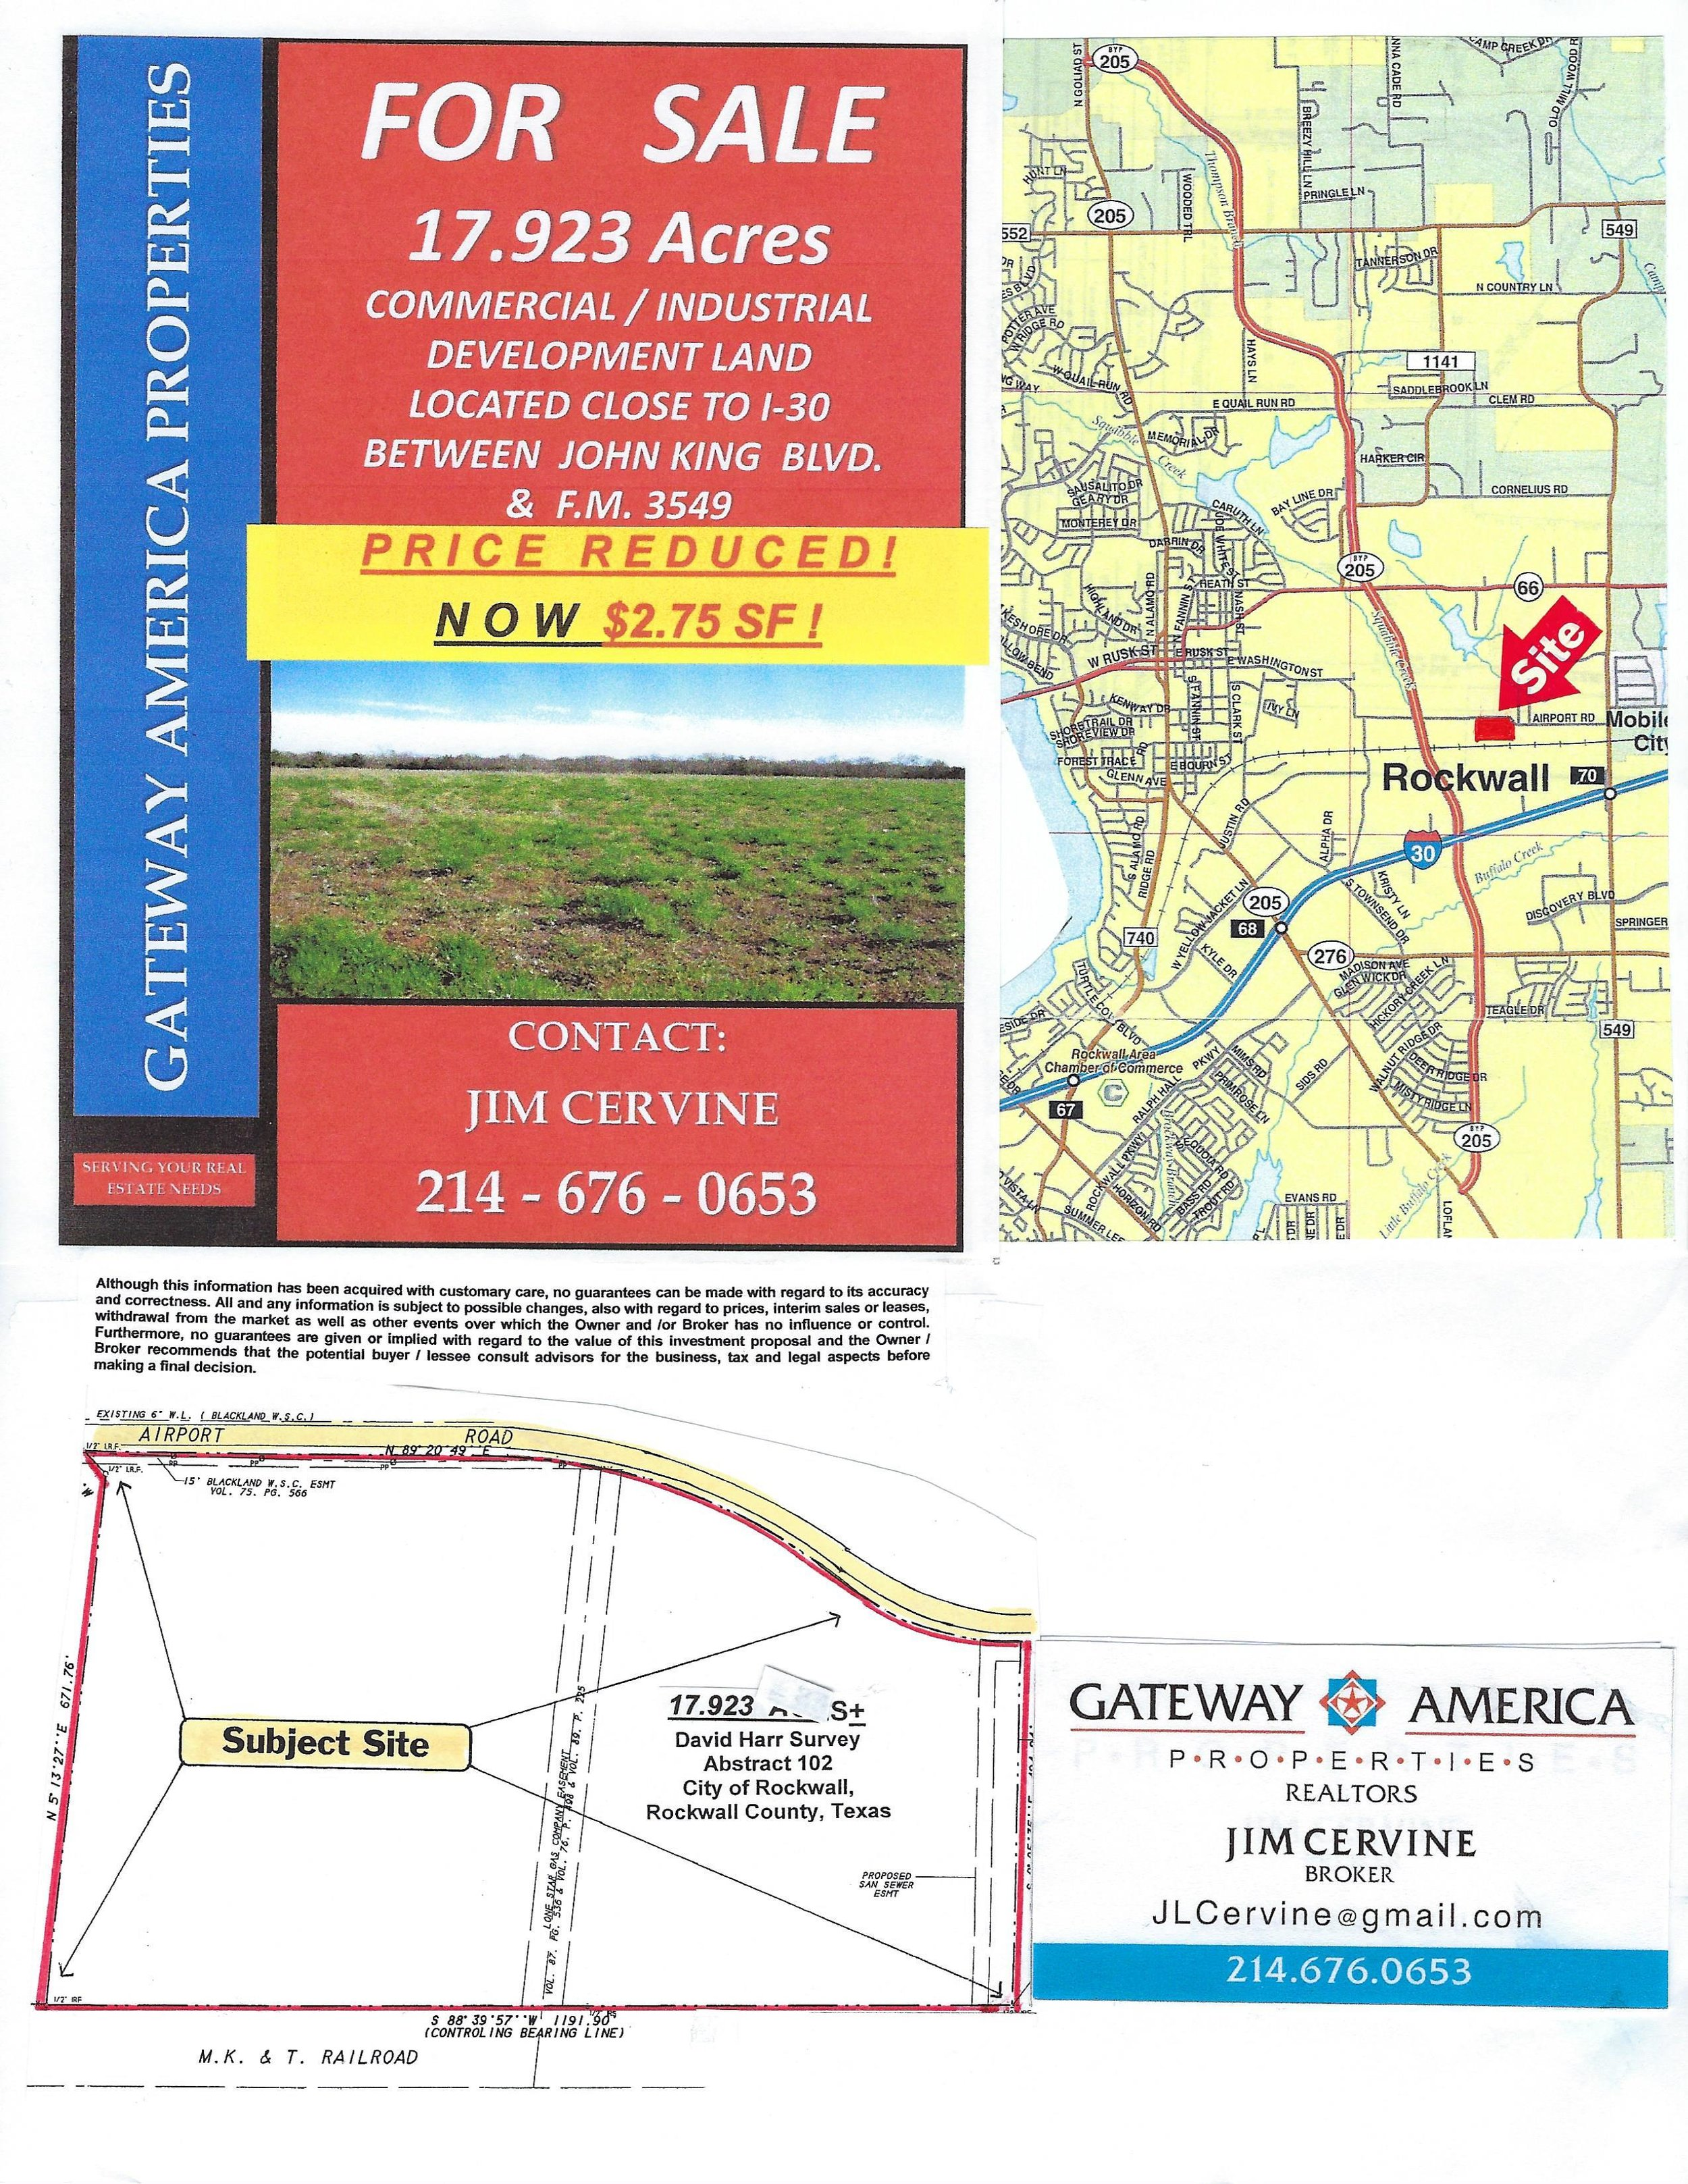 airport_road__17.923_acres__1_page_flyer_jpeg0001.jpg